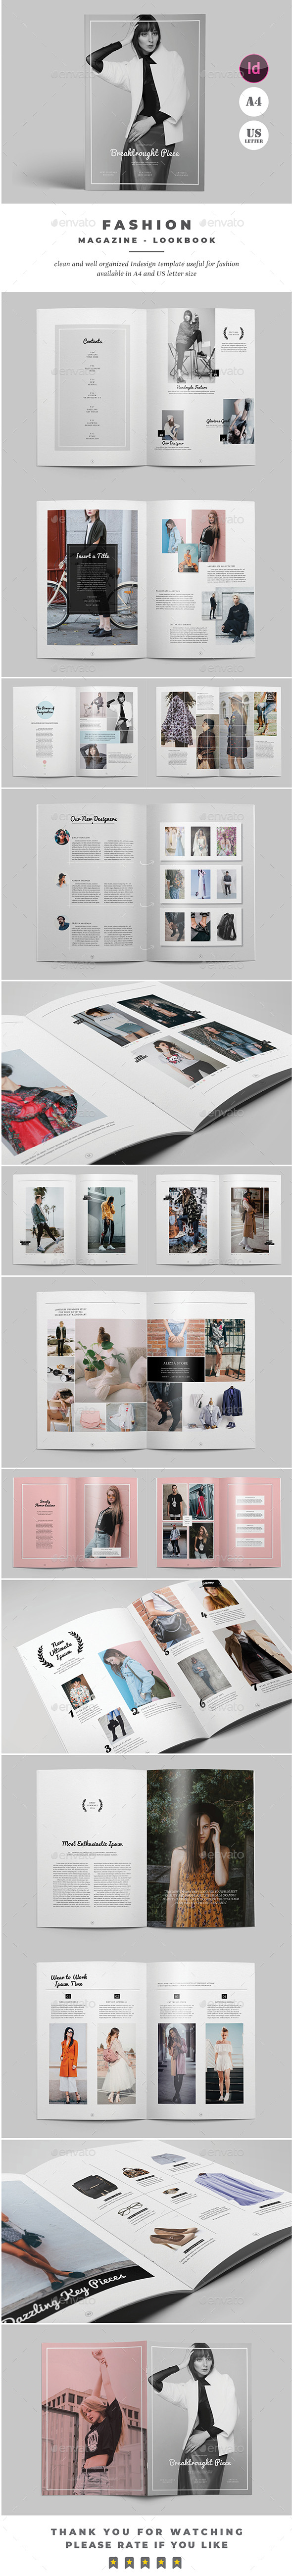 Fashion Lookbook Magazine - Magazines Print Templates